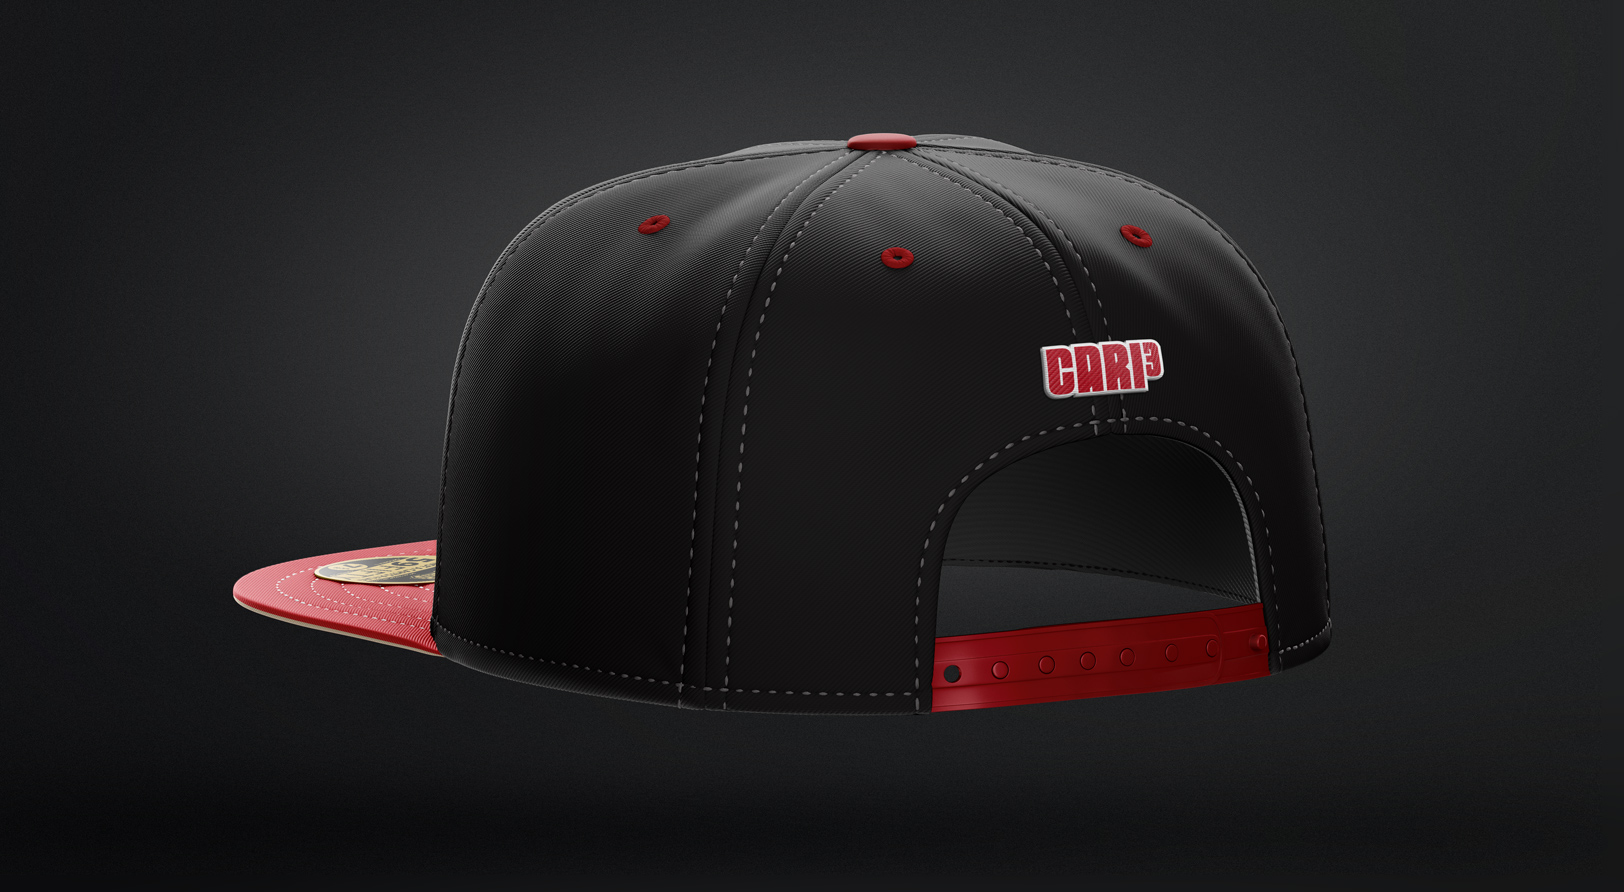 Athlete brand for Matt Carpenter mocked up on a flatbill hat